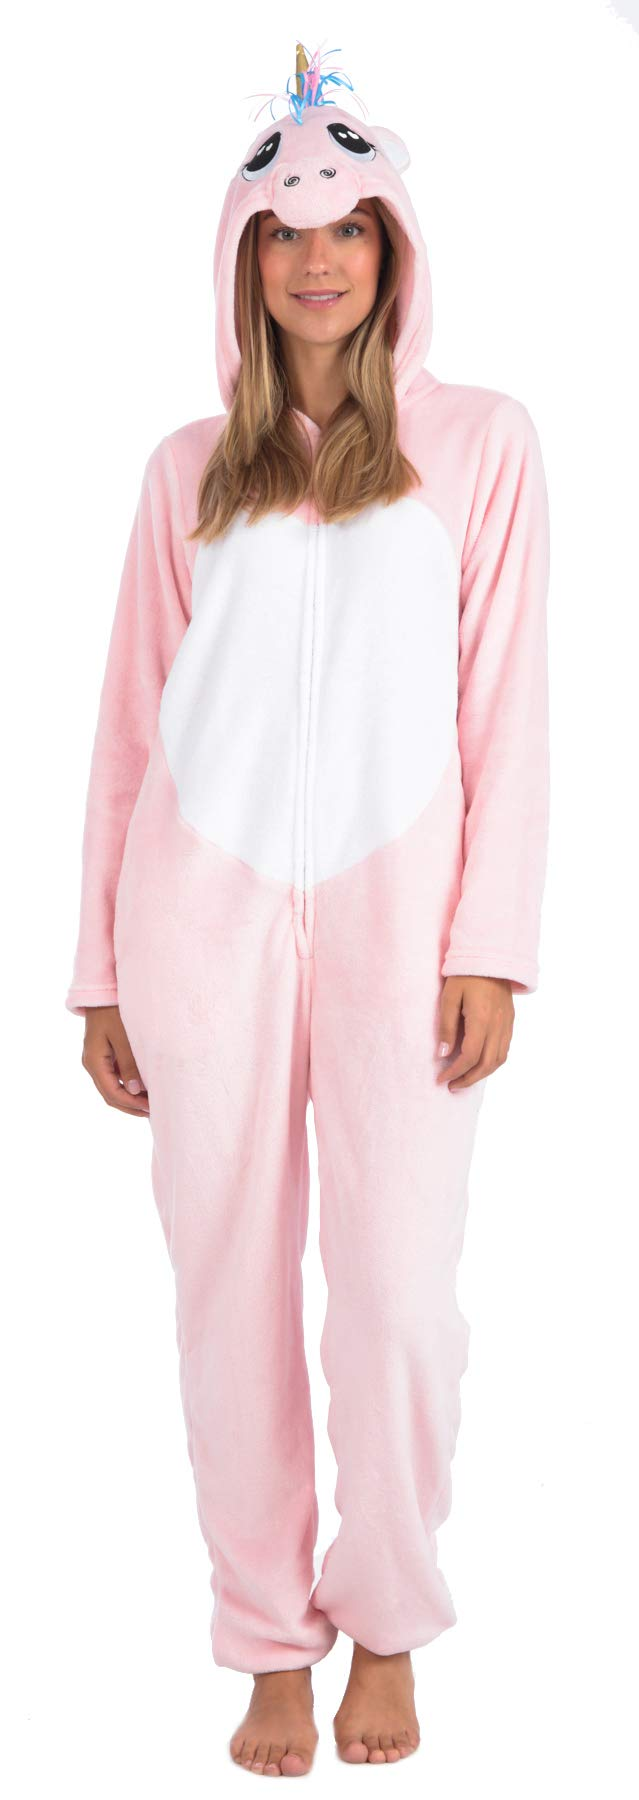 Body Candy Women's Plush Adult Animal Hood Onesie Pajama (Unicorn, Small) by Body Candy Loungewear